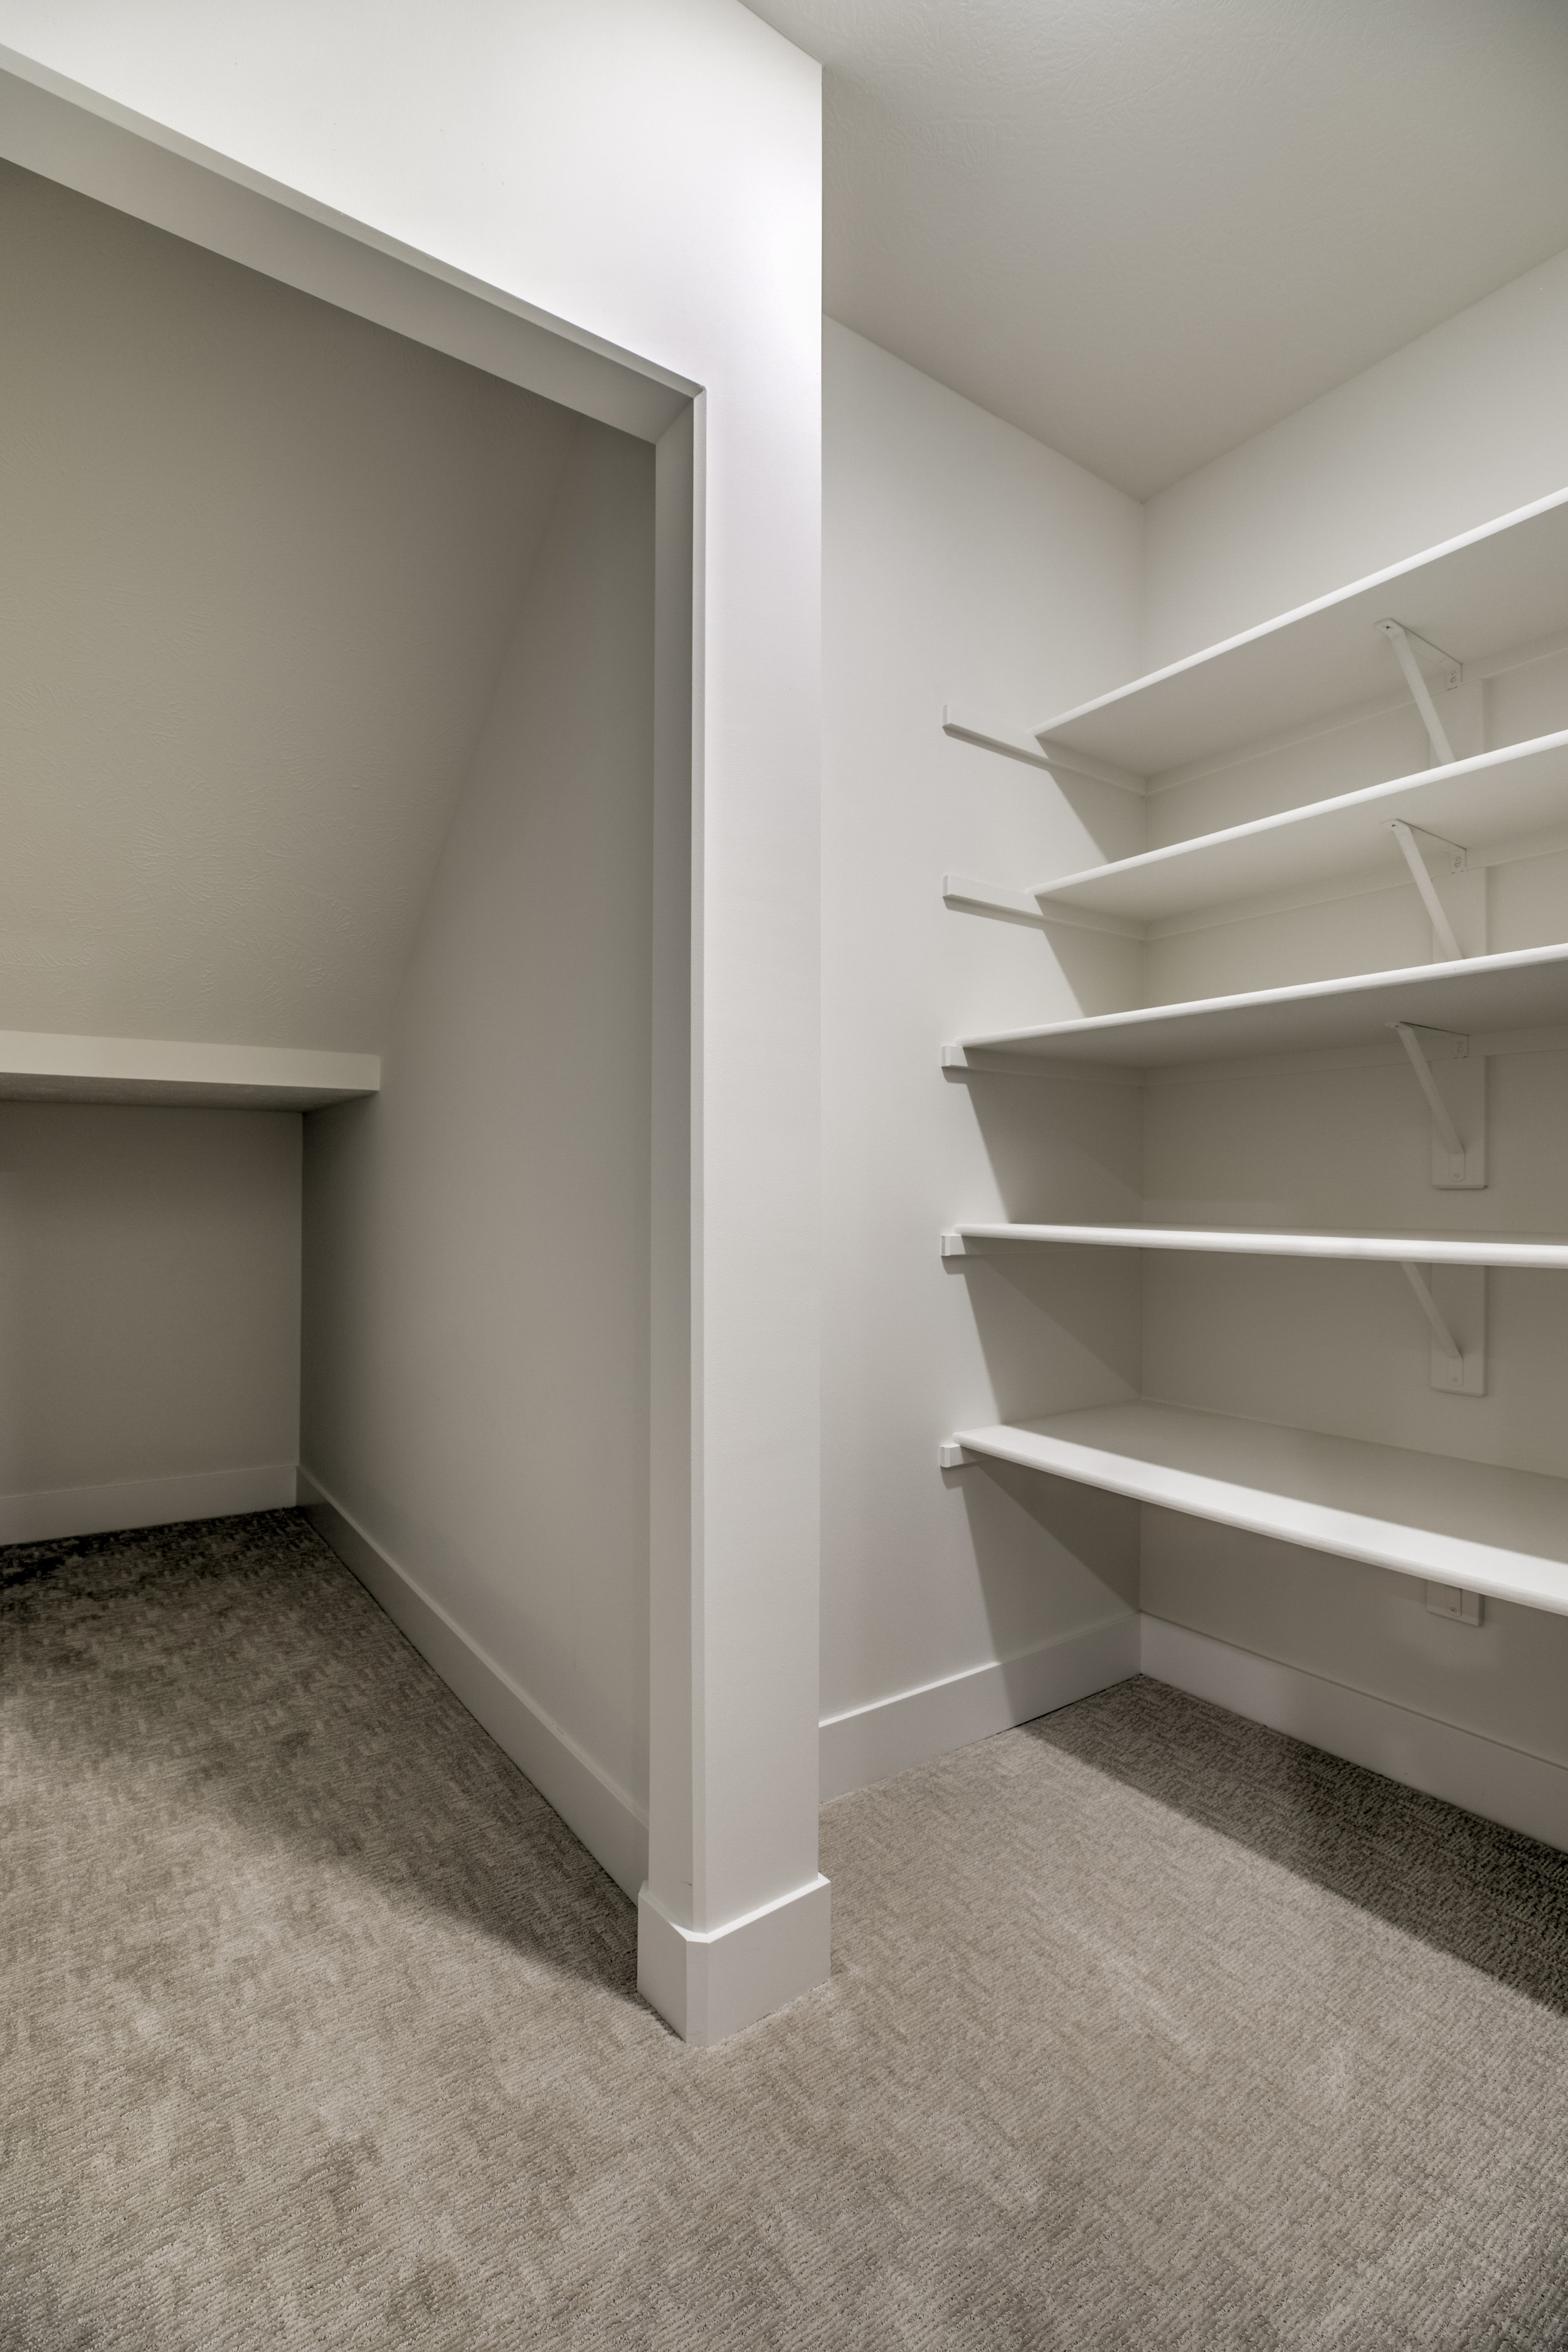 The Storage Space | Laid Back Lifestyle